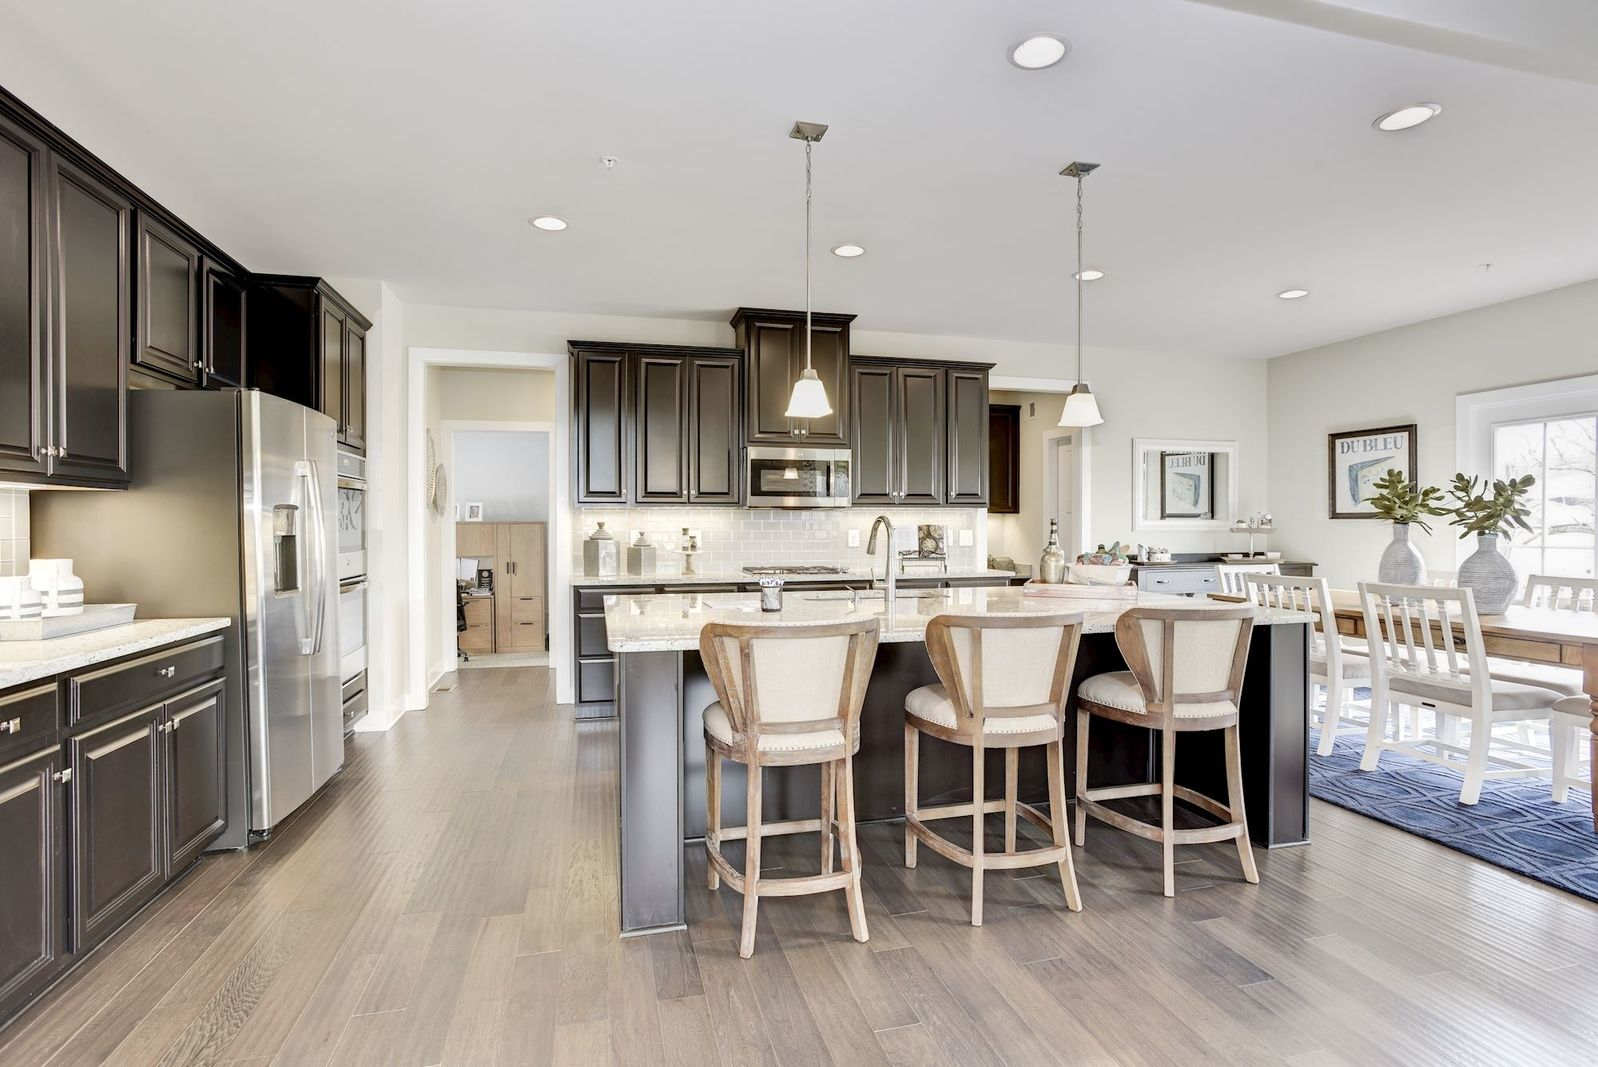 Kitchen featured in the Normandy By Ryan Homes in Washington, MD